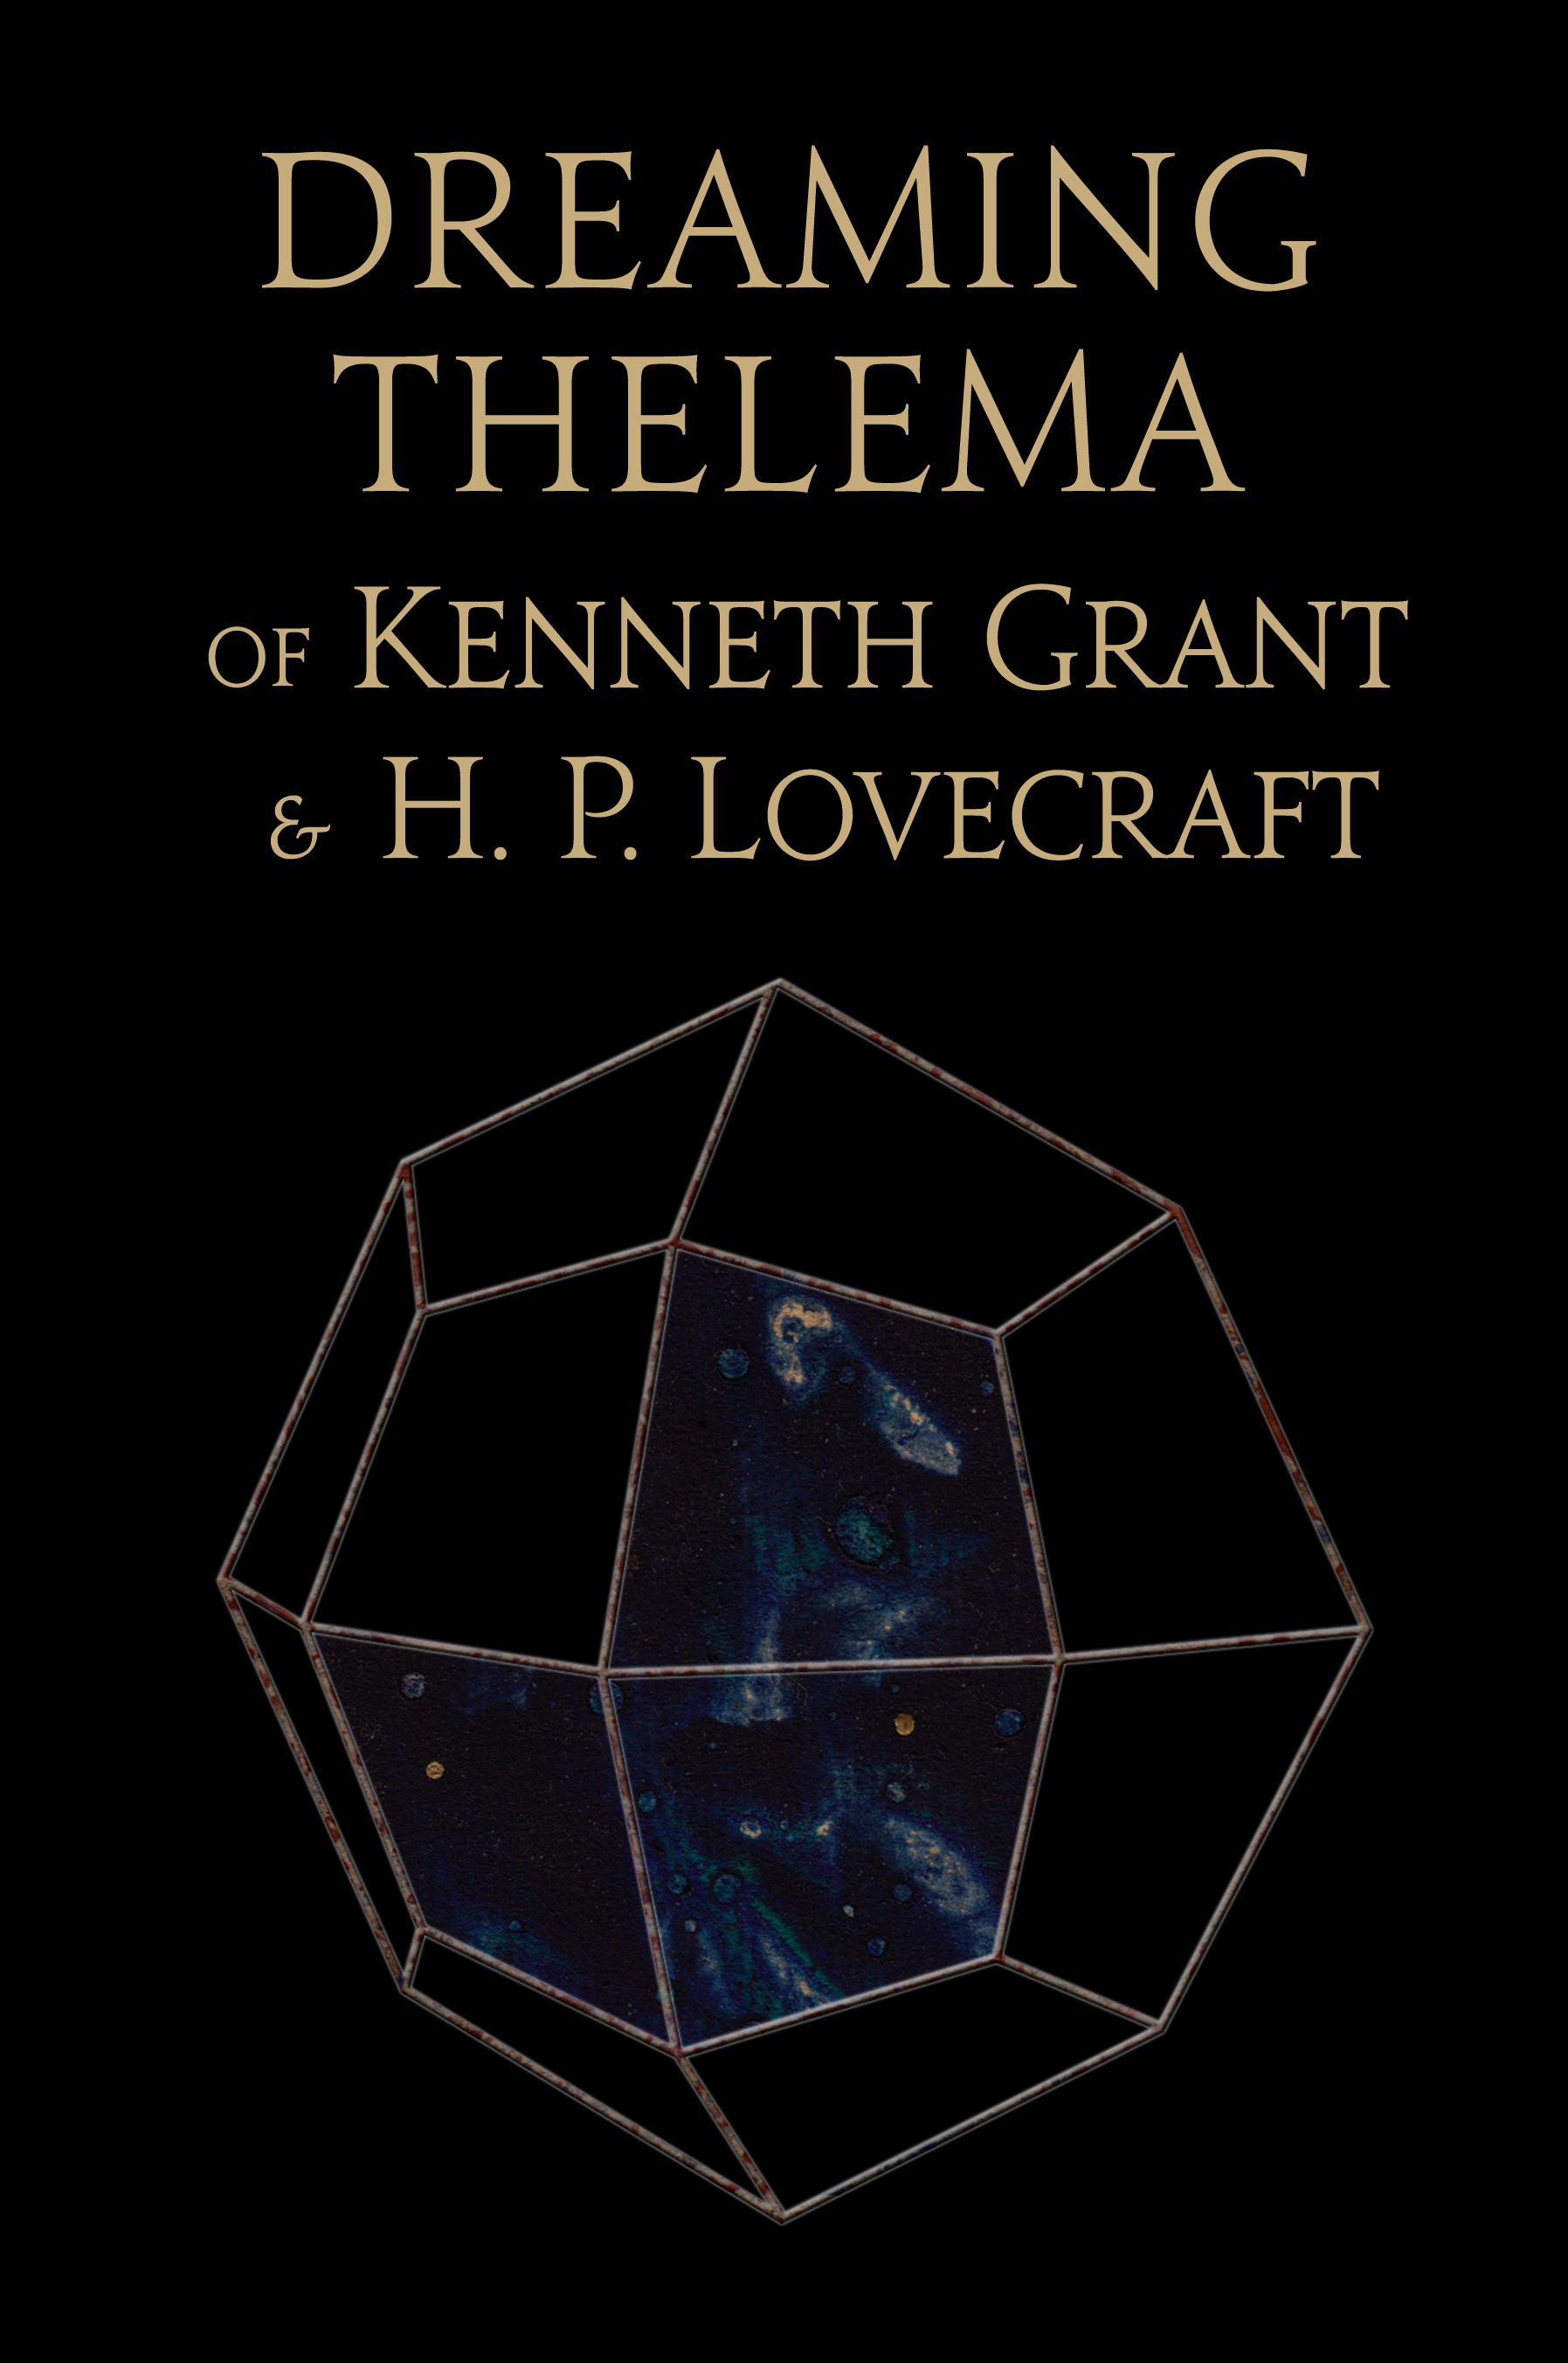 Ordo Astri Books: Dreaming Thelema of Kenneth Grant and H. P. Lovecraft